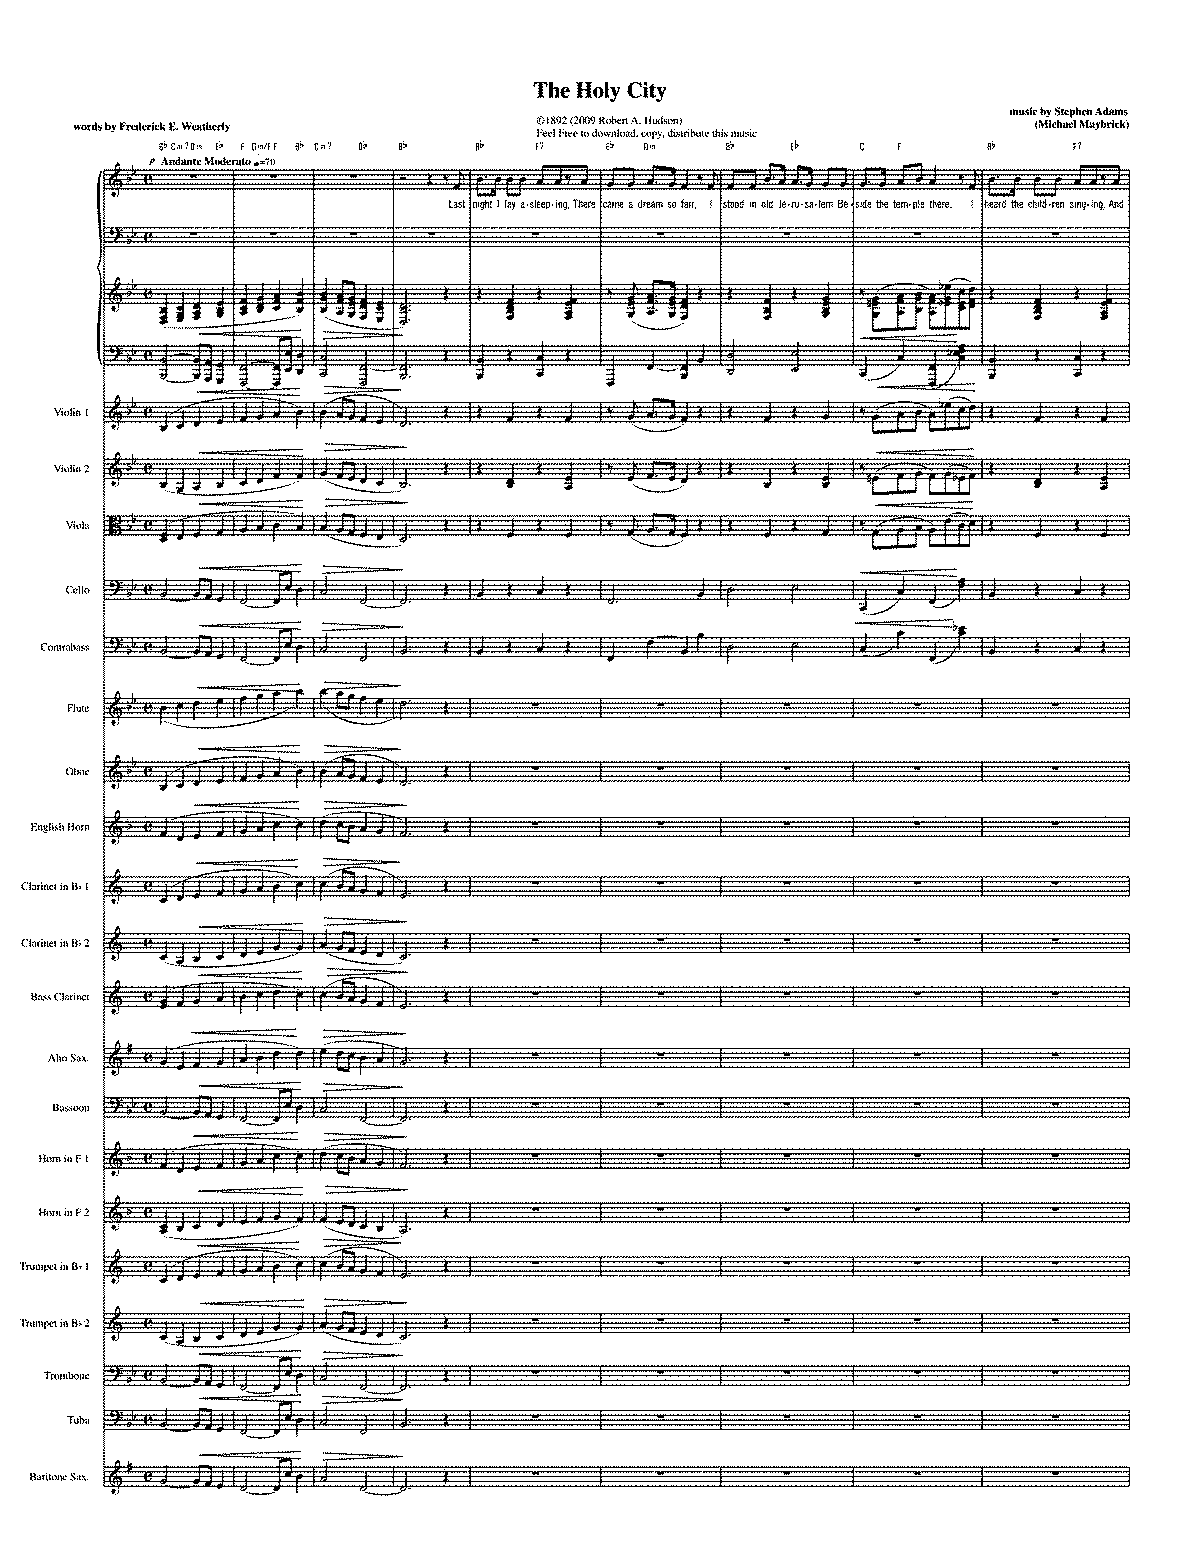 PMLP80538-The Holy City Conductors Score.pdf